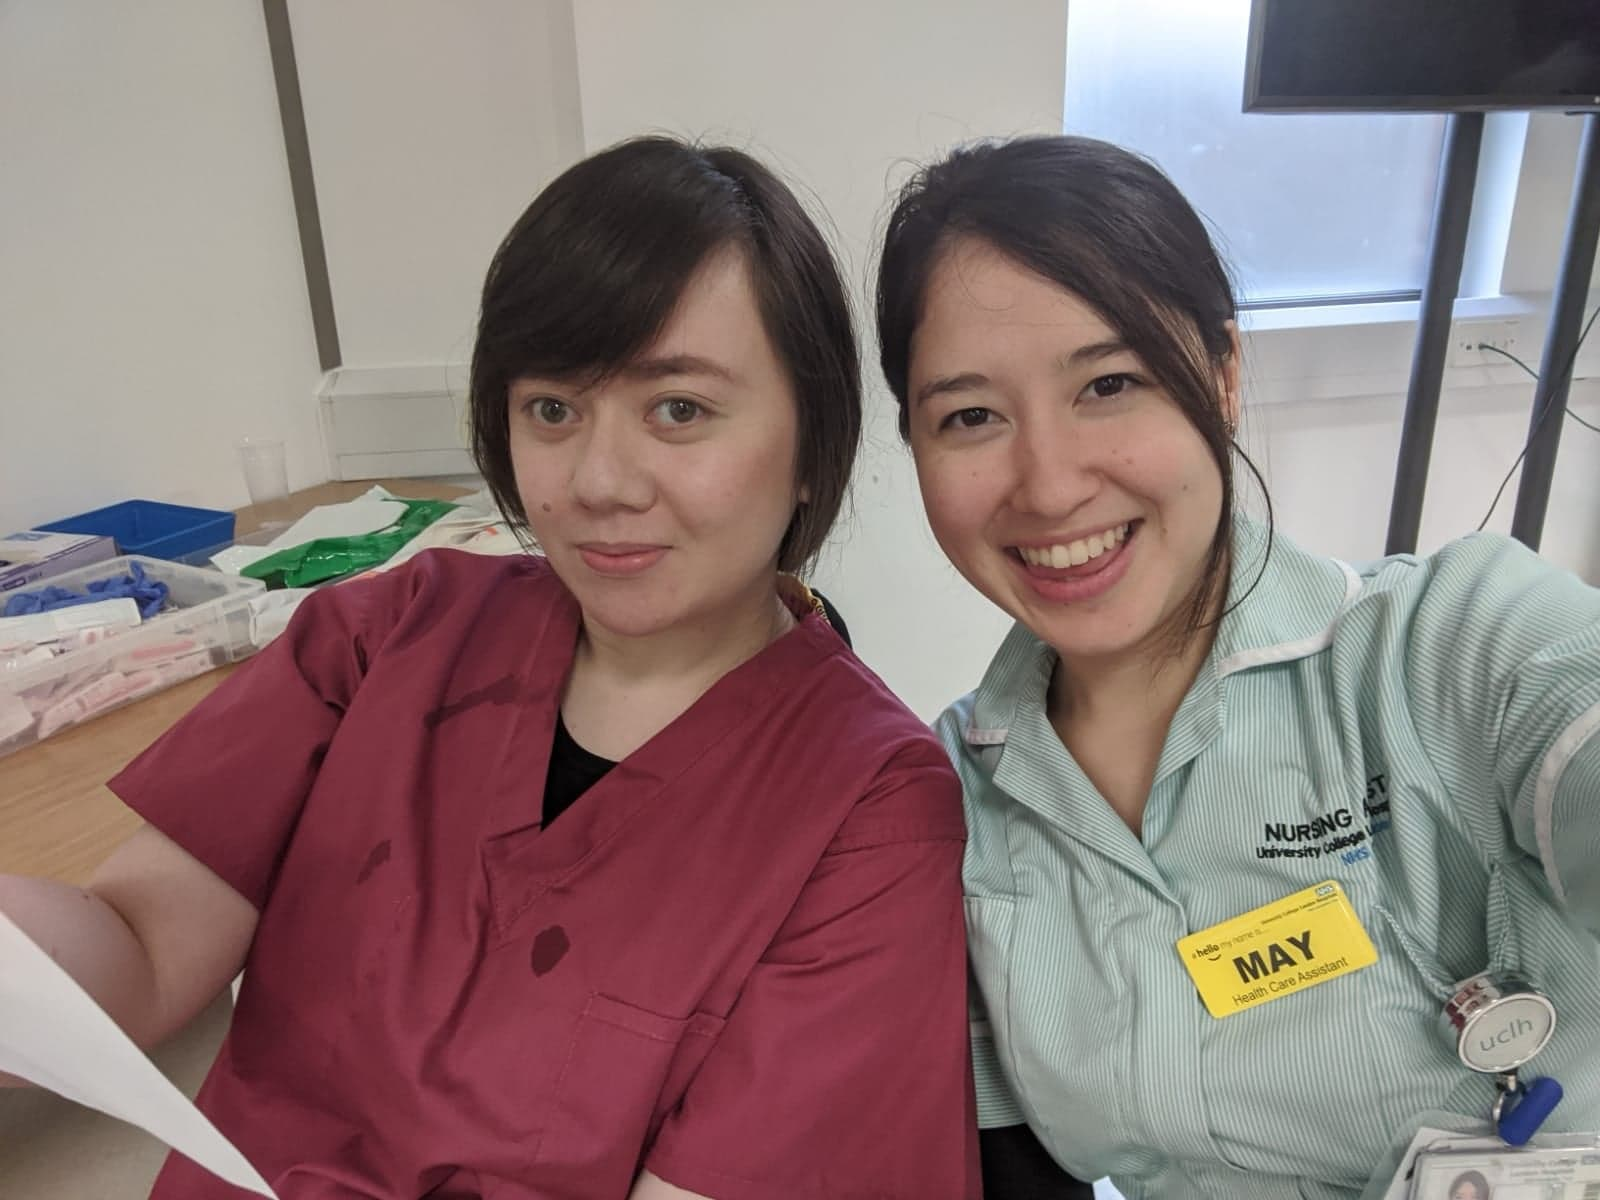 Japanese Healthcare Culture Nurses in the UK